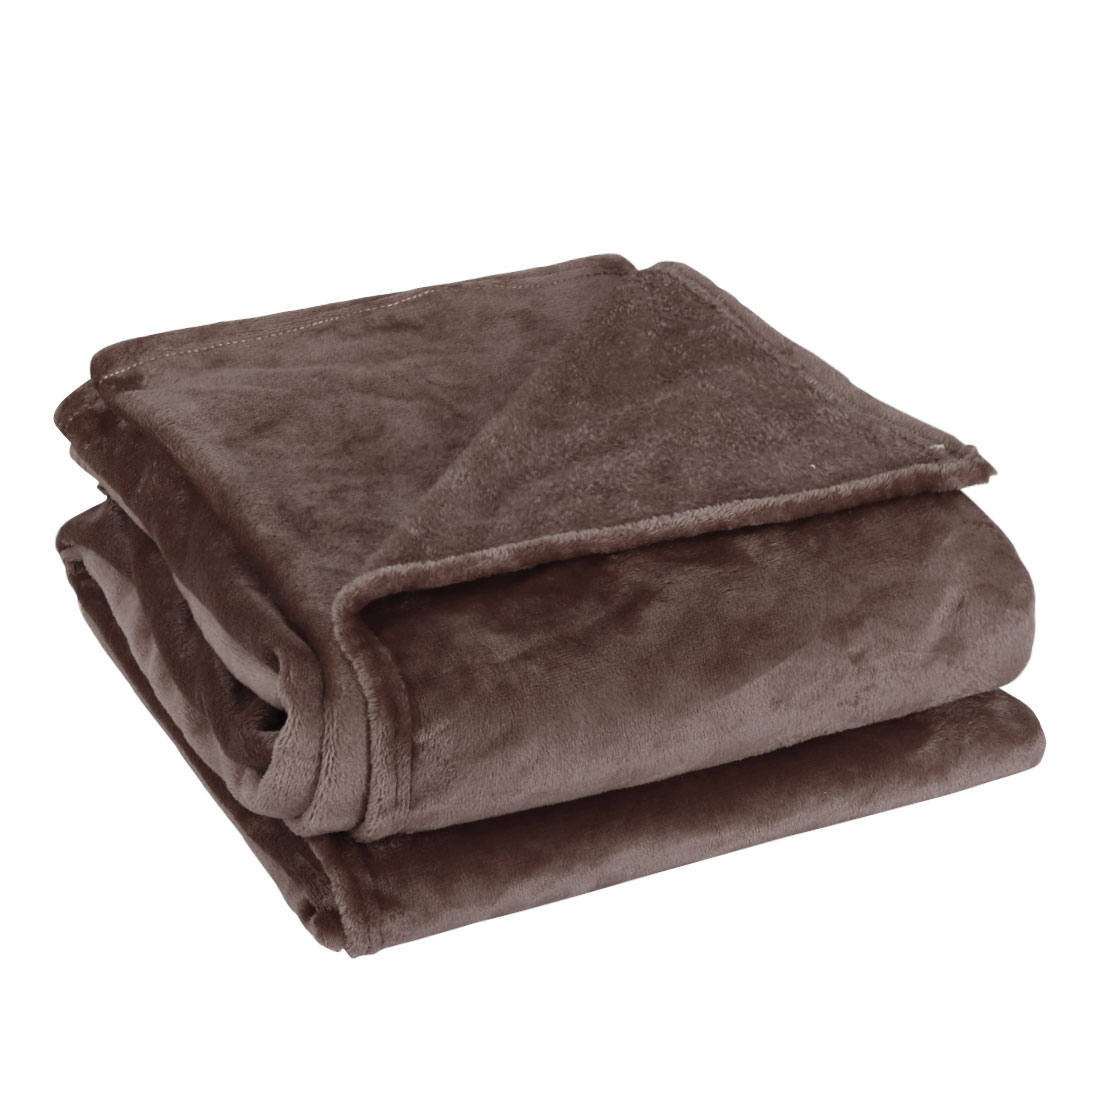 230 x 250cm Home Bedroom Warm Throw Blanket Rug Plush Fleece Bed Quilt Sofa Soft Pure Coffee Color